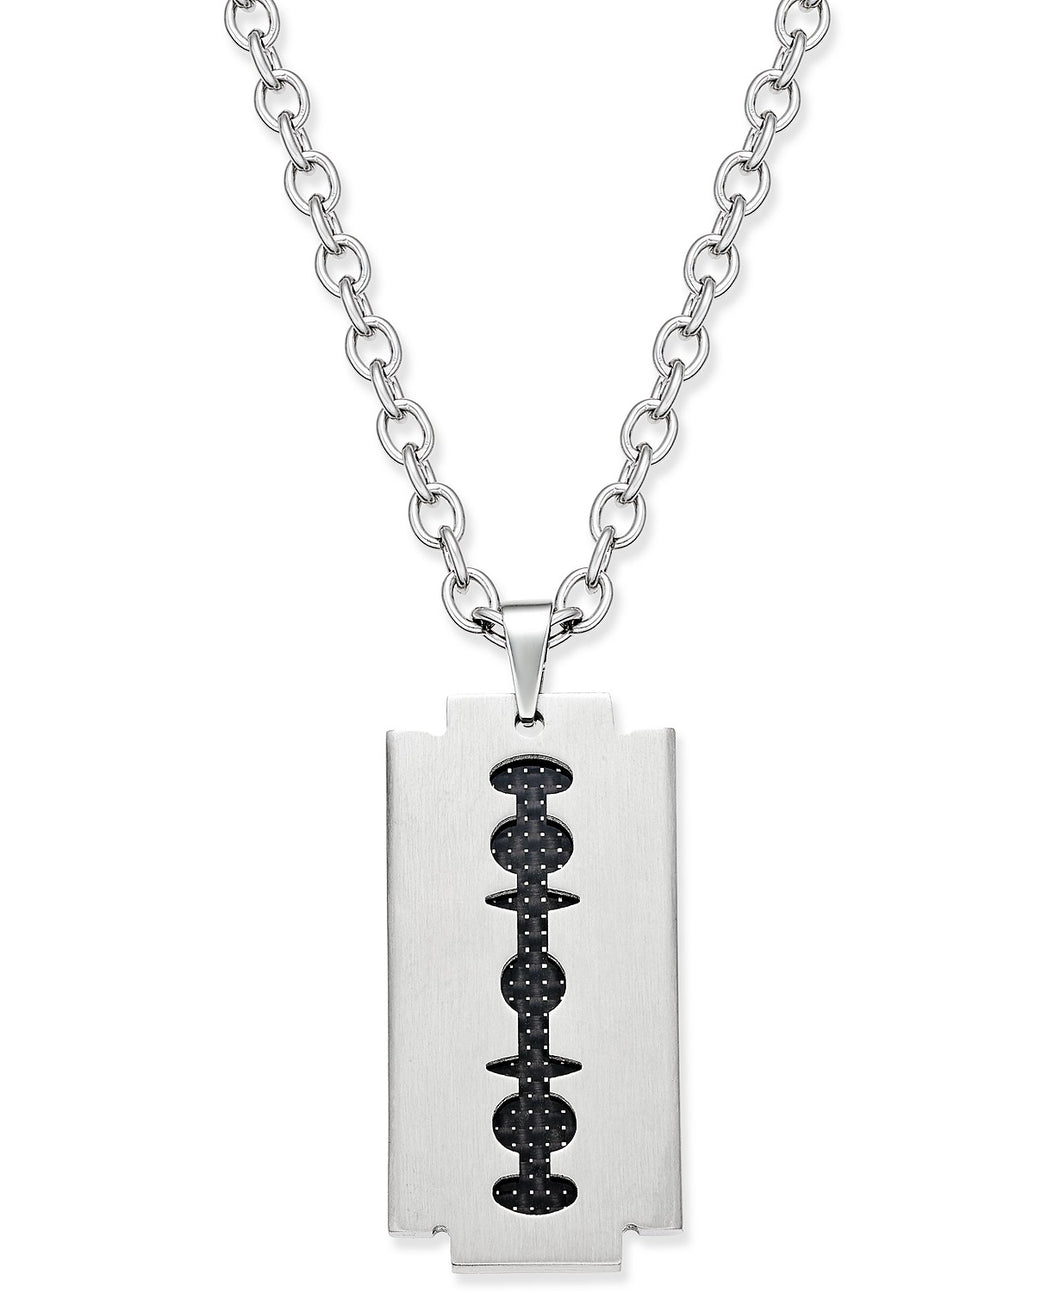 Men's Two-Tone Stainless Steel Blade Pendant Necklace